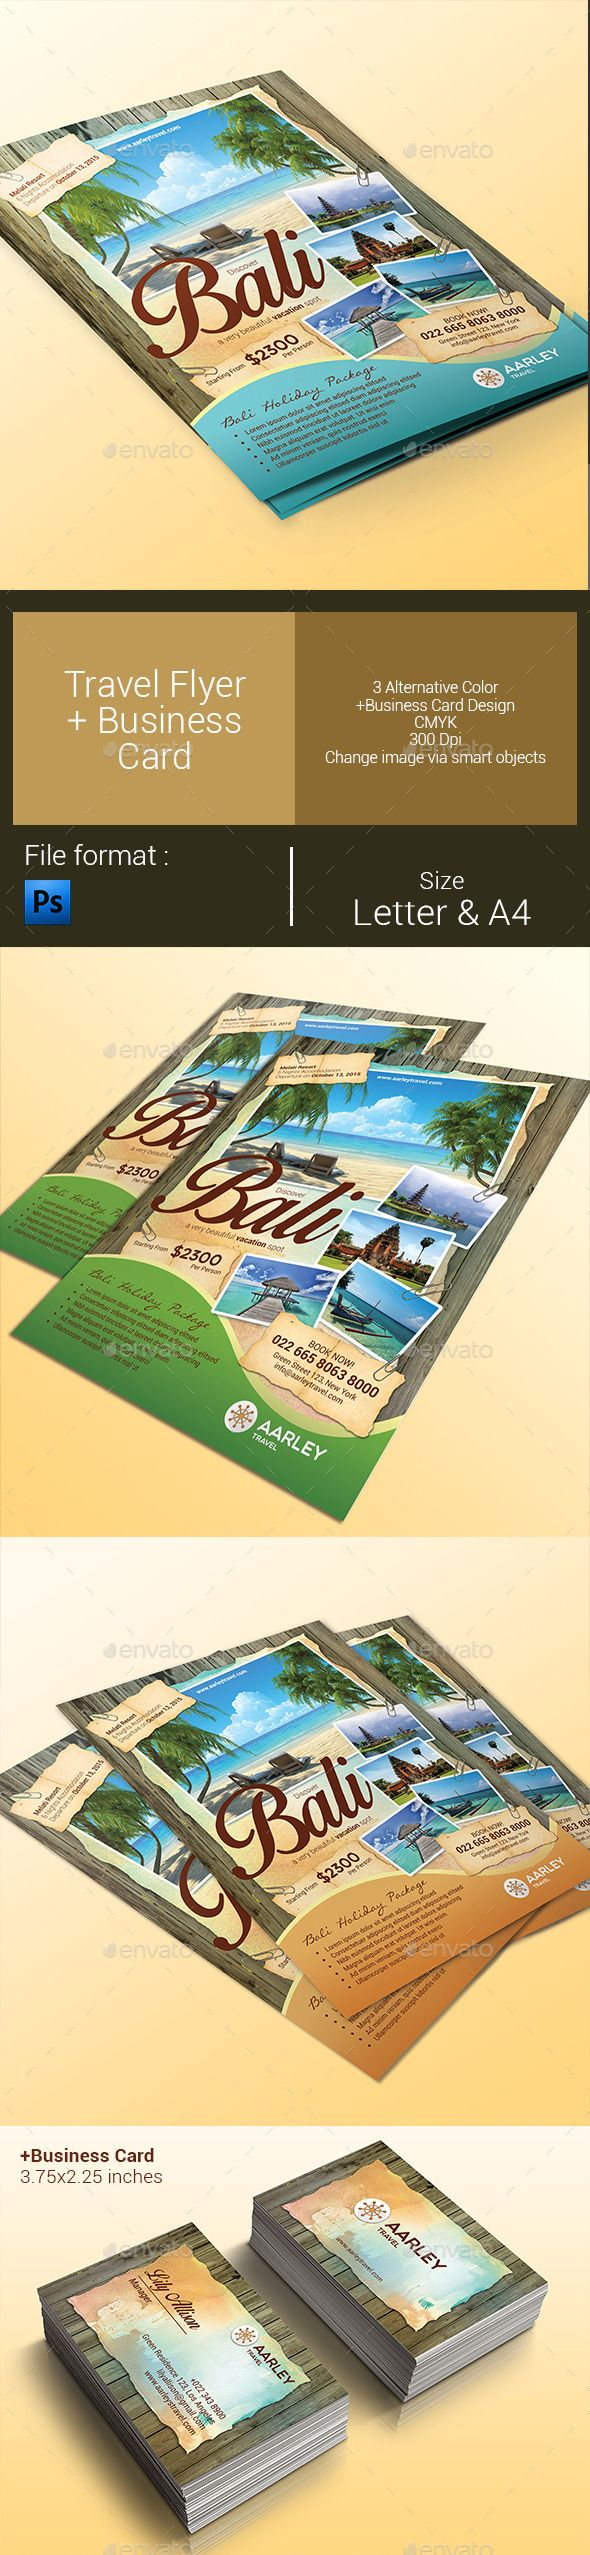 Travel Flyer Business Card Business Cards Business And Flyer